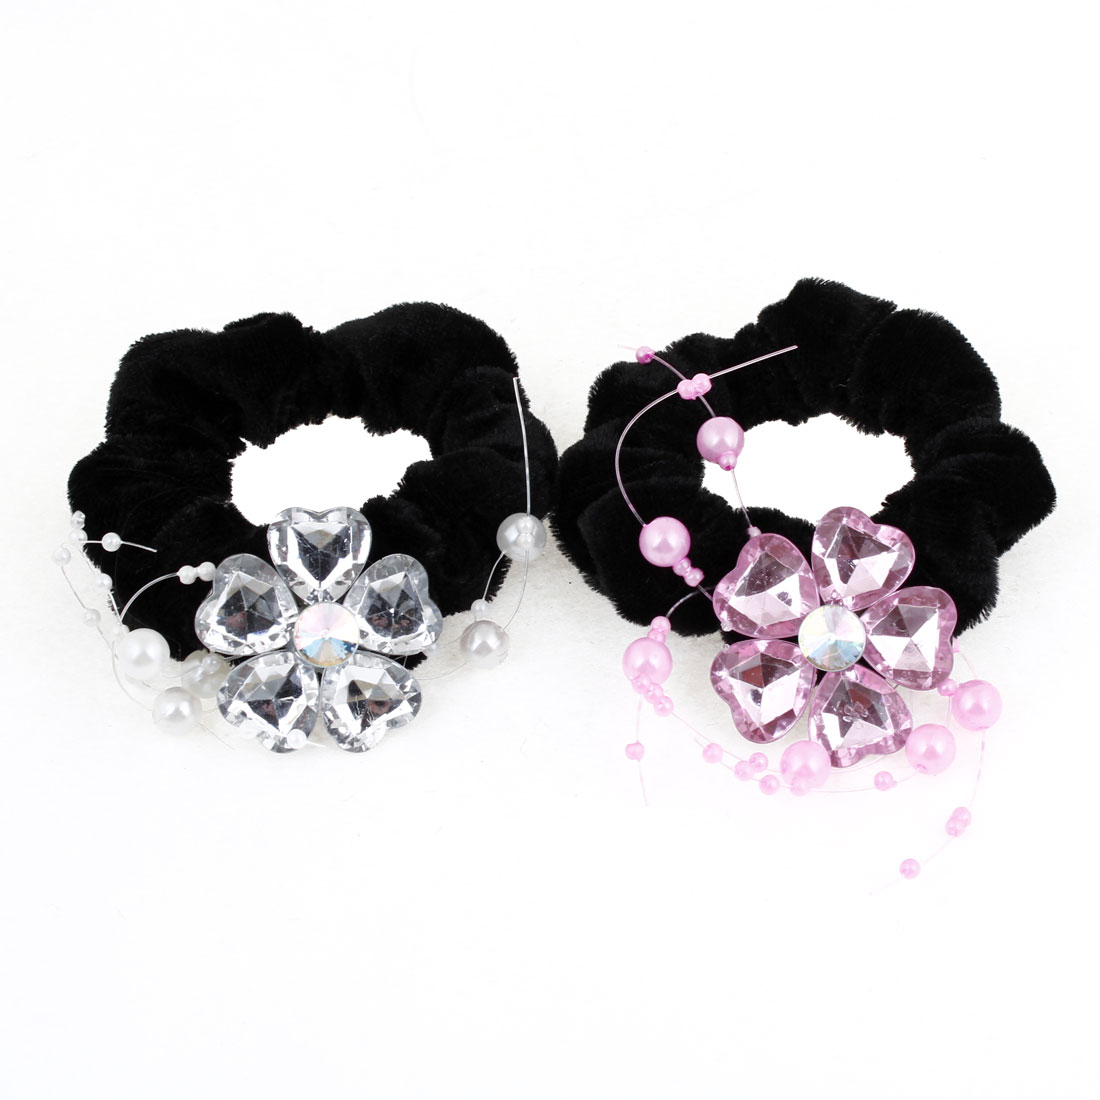 2 Pcs Plastic Beads Inlaid Flower Decor Black Velvet Ponytail Holder Hairband